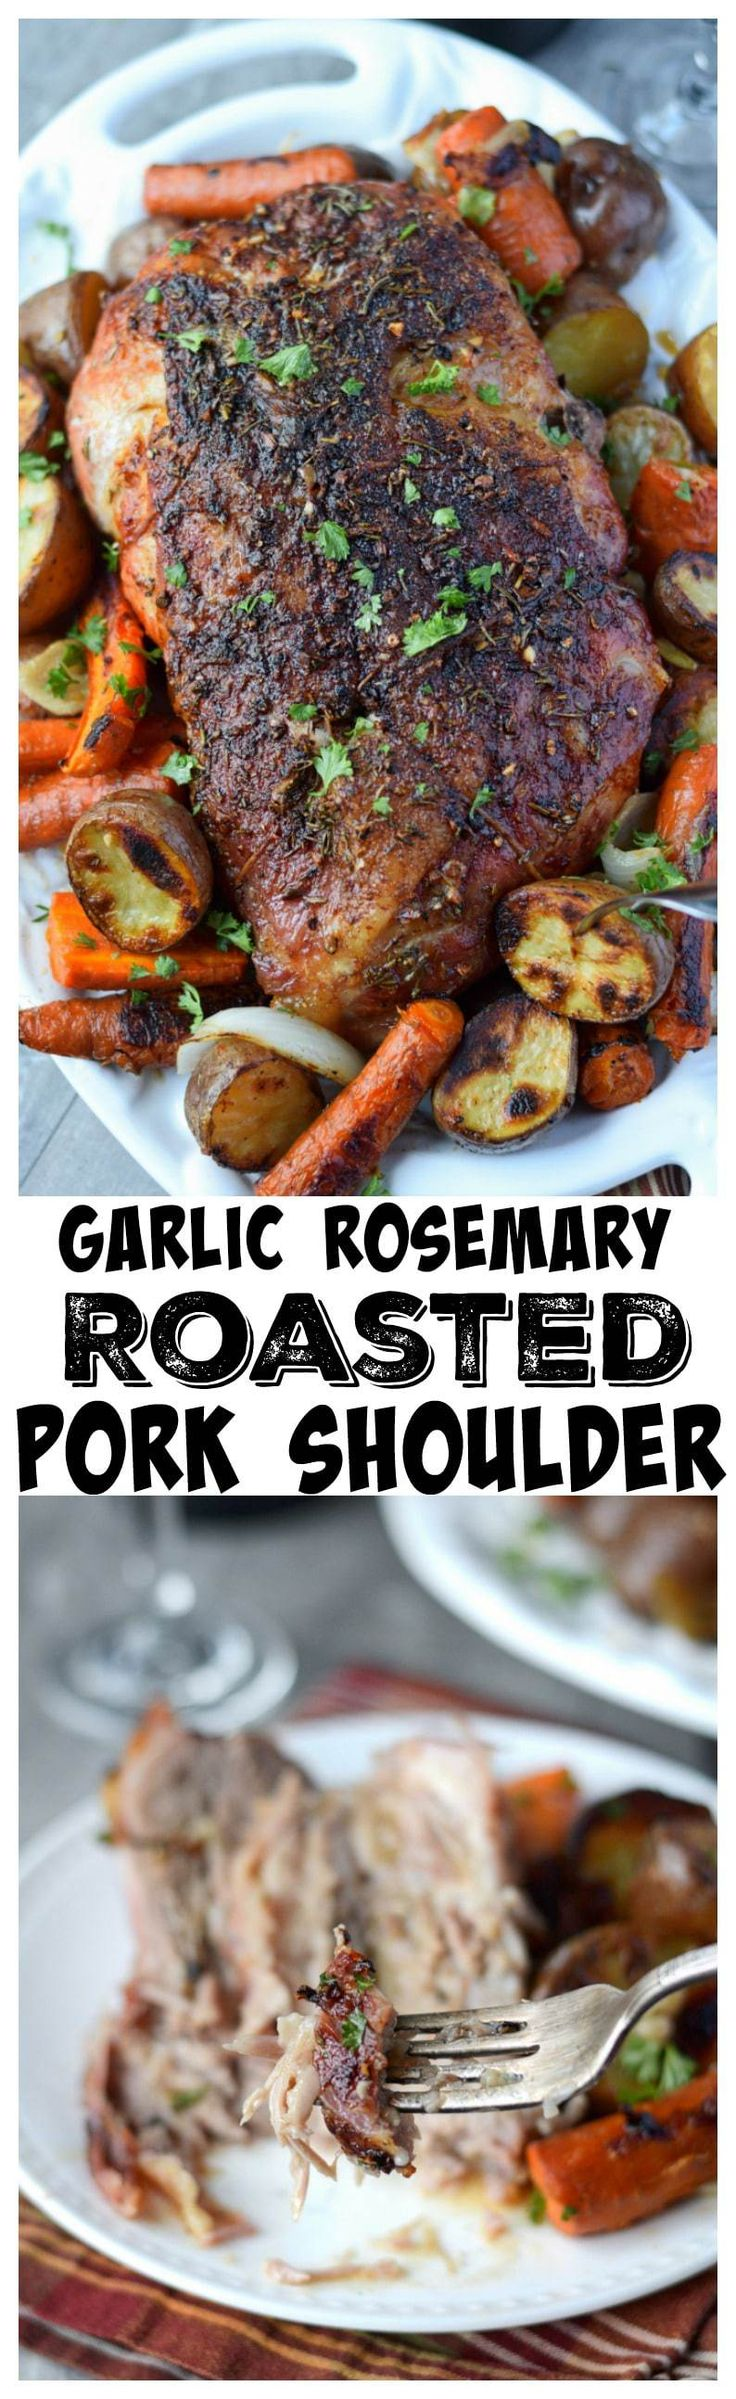 This Garlic Rosemary Roasted Pork Shoulder recipe melts in your mouth. So tender and juicy and perfect for Holiday meal or Sunday supper! #Holidays #sundaysupper #porkroast